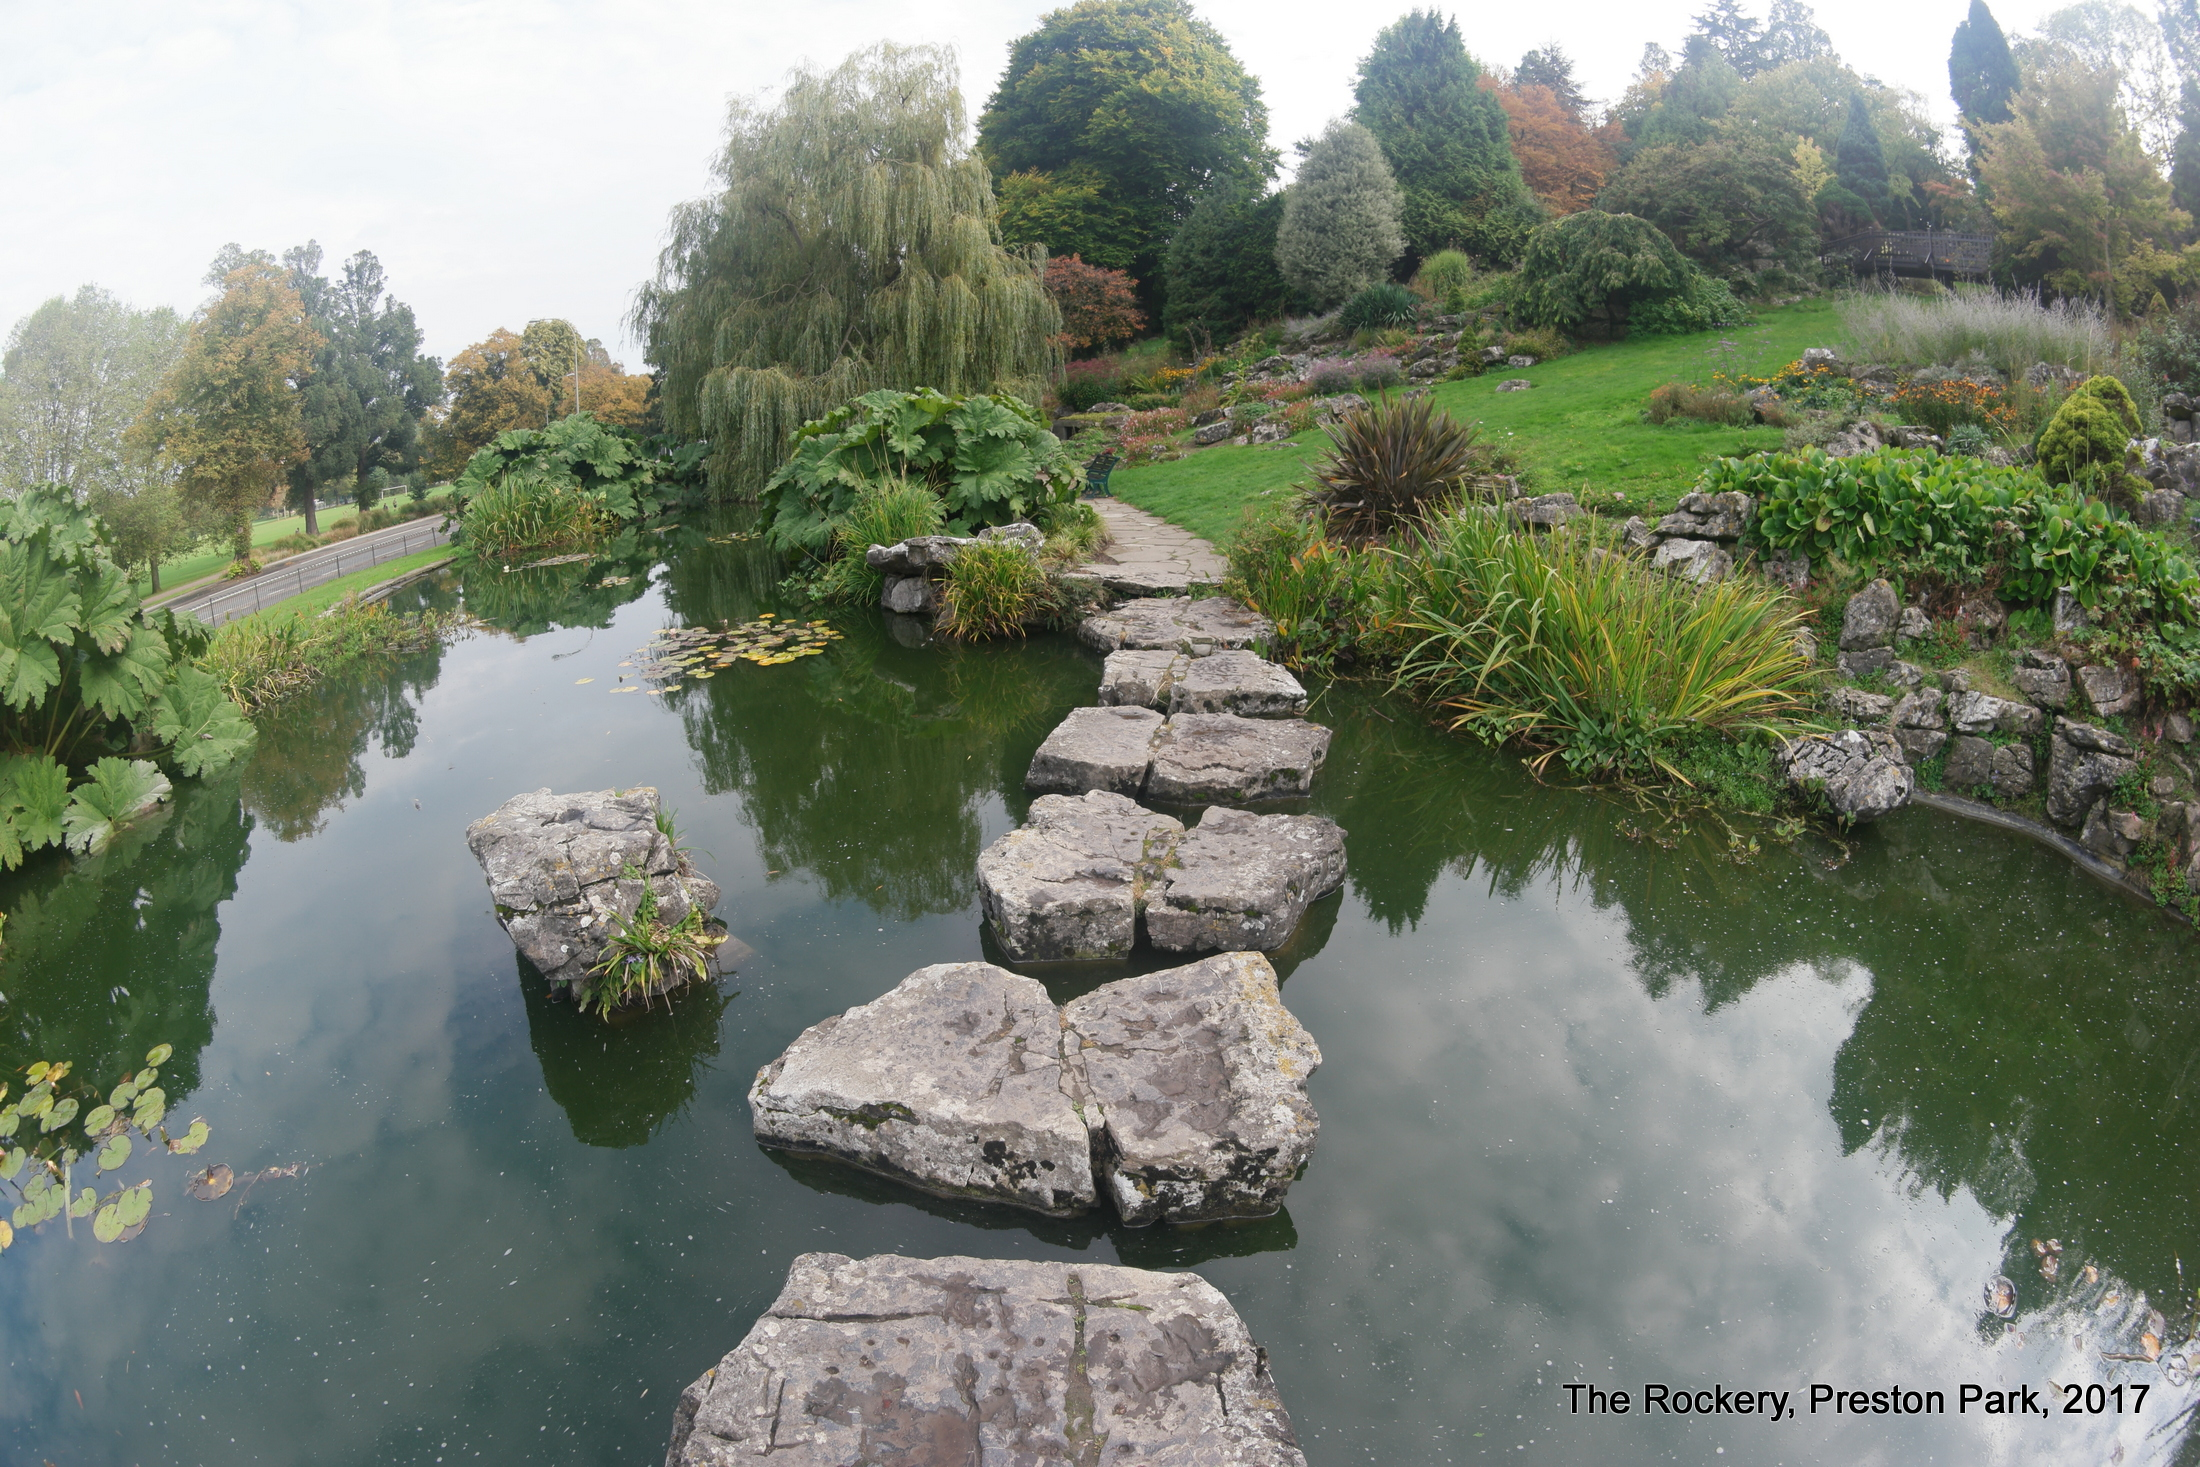 The Rockery (a.k.a. The Rookery, The Rock Gardens ...